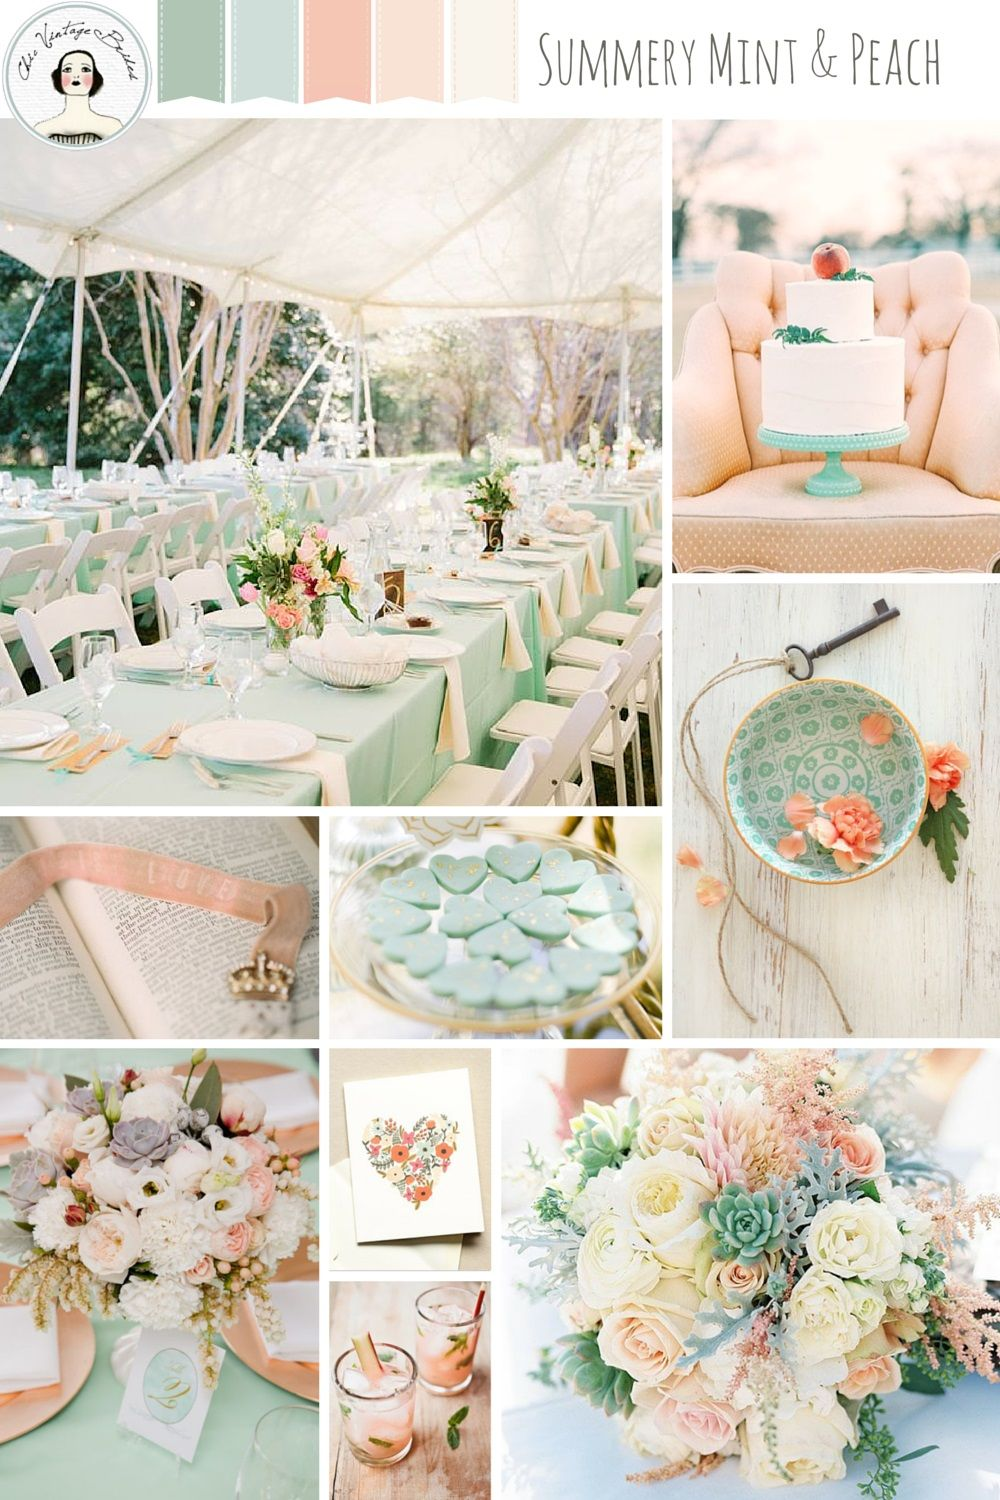 A romantic mint peach wedding inspiration board peach romantic summery mint and peach a romantic colour palette for a relaxed wedding junglespirit Images